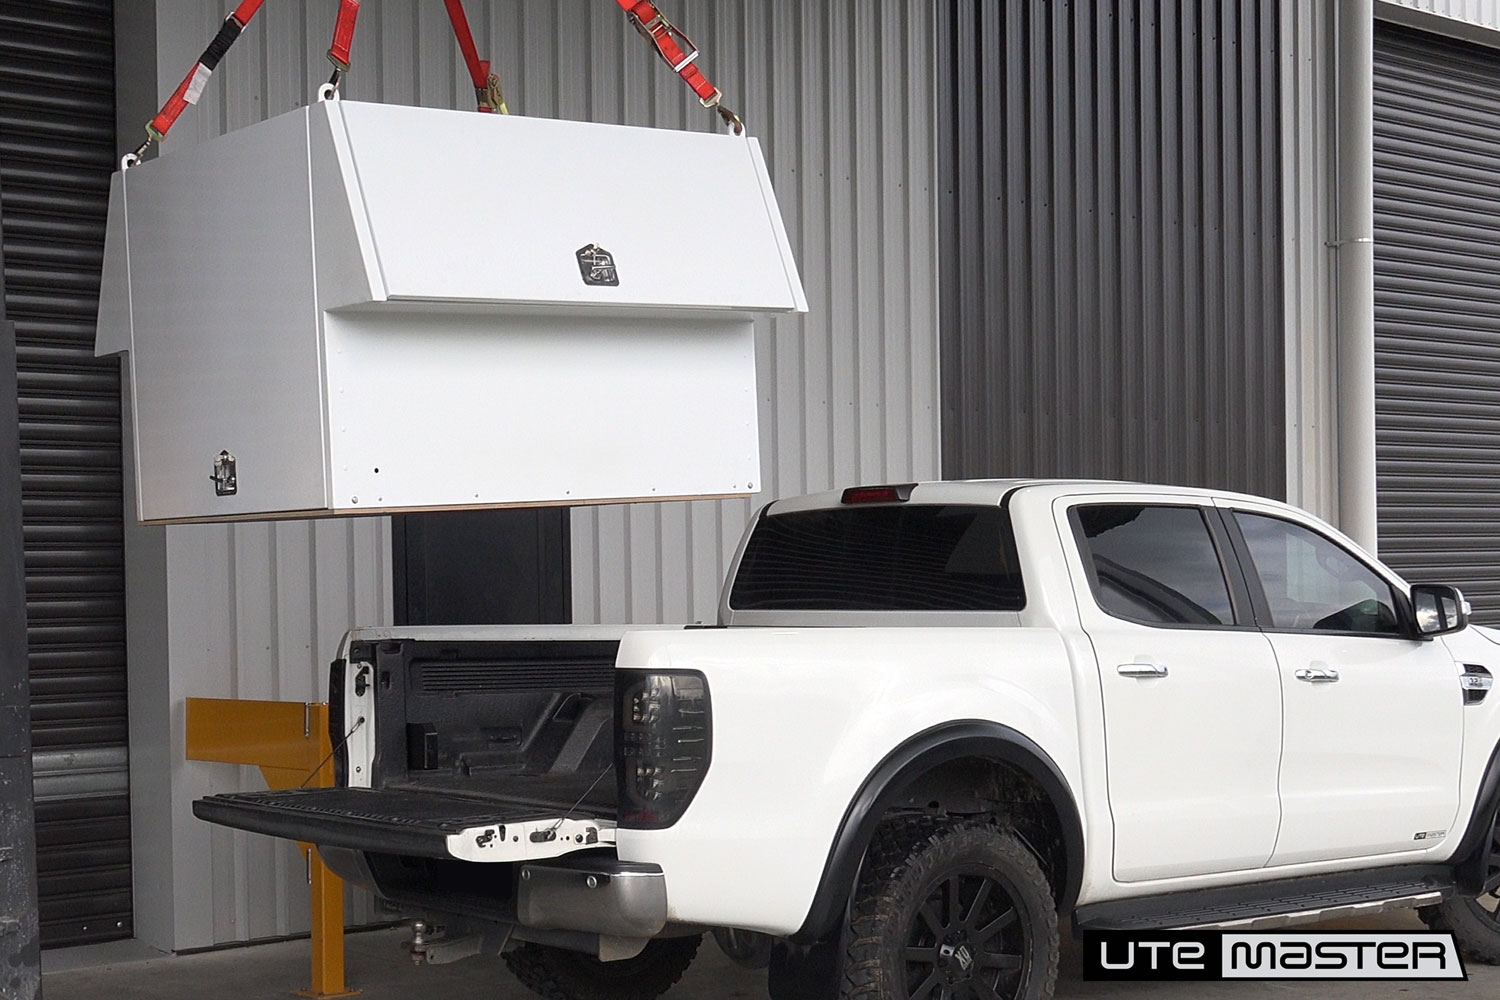 Lift Off Toolbox to suit Commercial Ute Removable Toolbox by Utemaster Lift off service body  v2